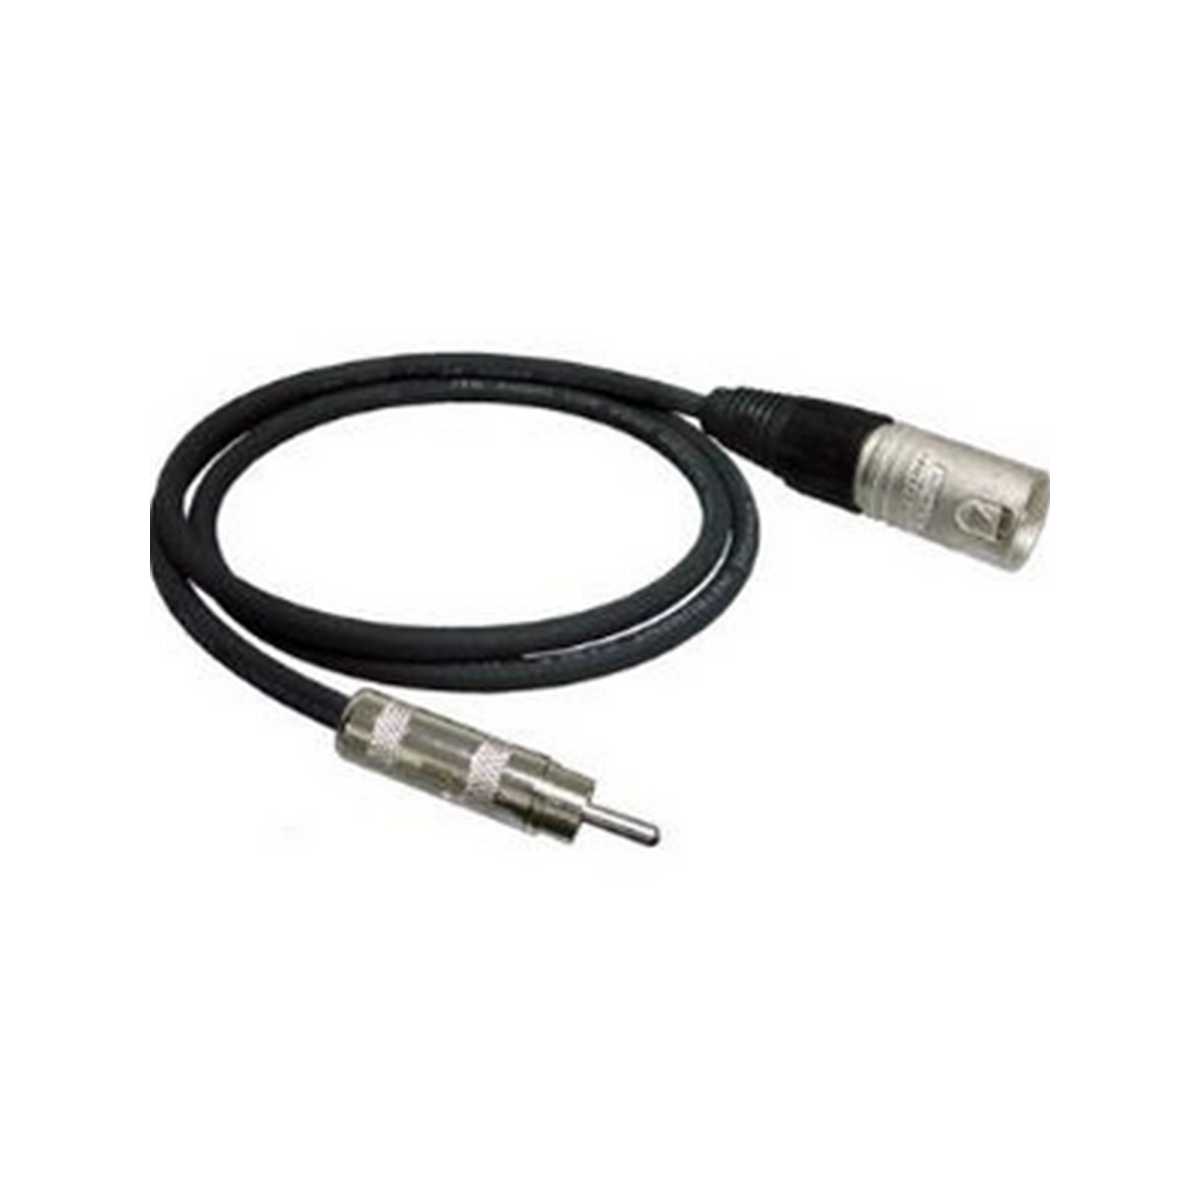 Rapco RCA Male to XLR Male 3 foot